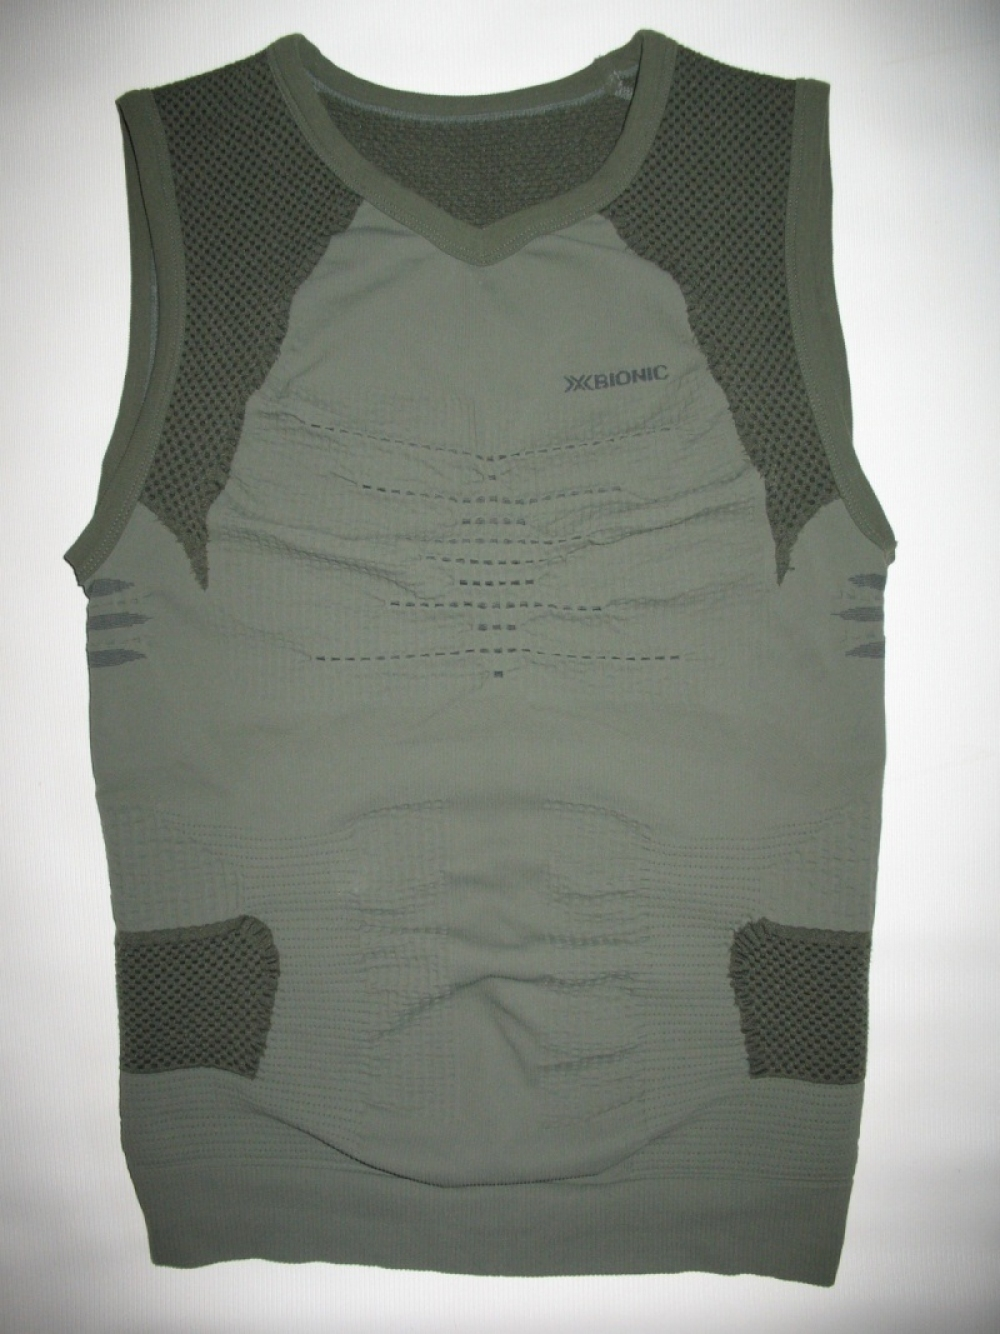 Футболка X-BIONIC Trekking Summerlight 1. 0 sleeveless shirts (размер L/XL) - 17912